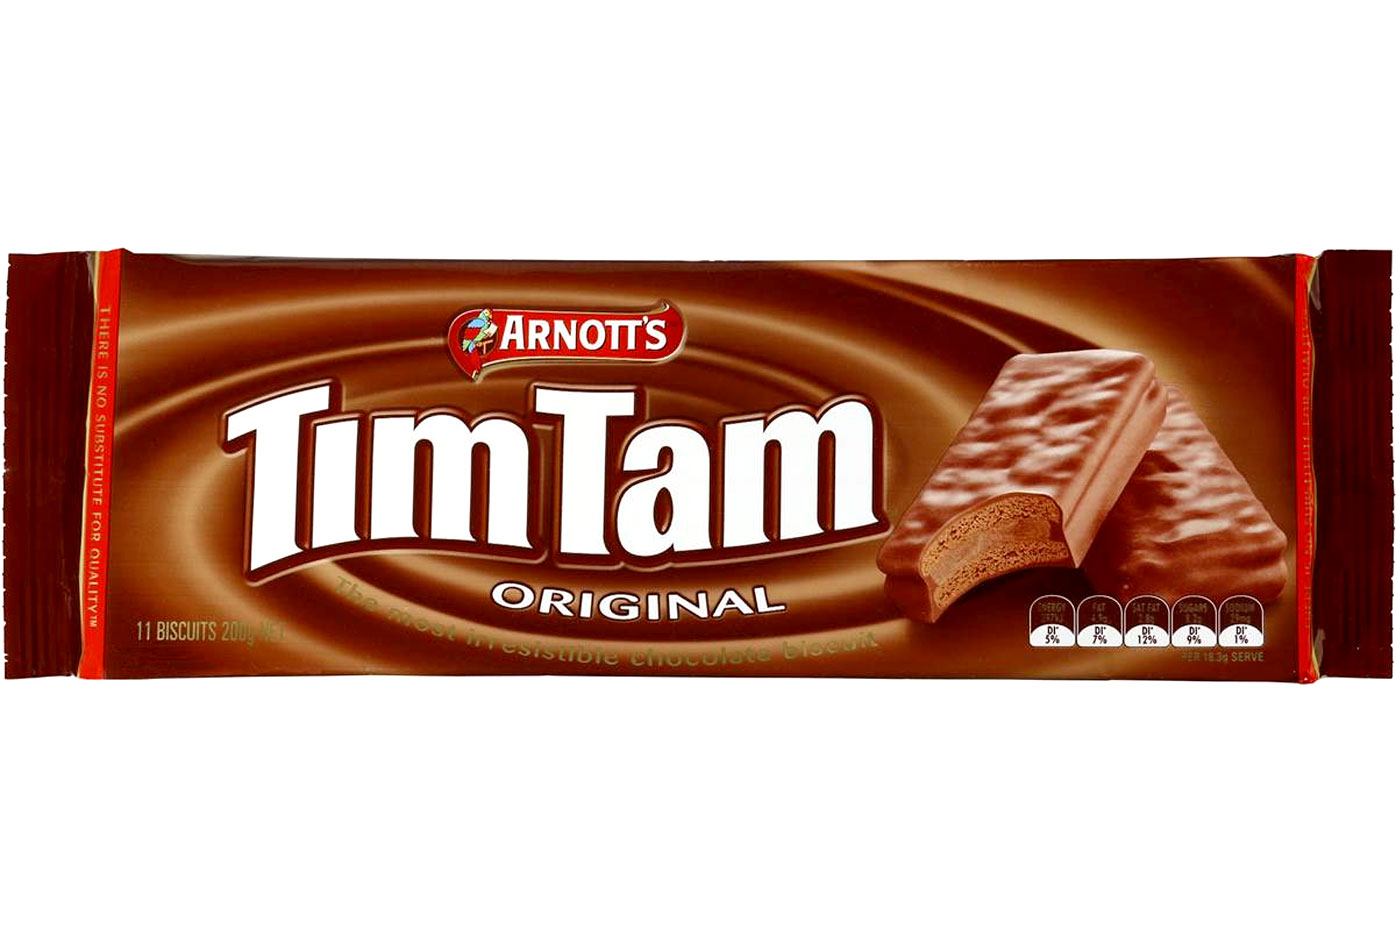 13 Healthy Foods With More Sugar Than A Tim Tam 9coach Arnotts Joyful Package Extra Cheese